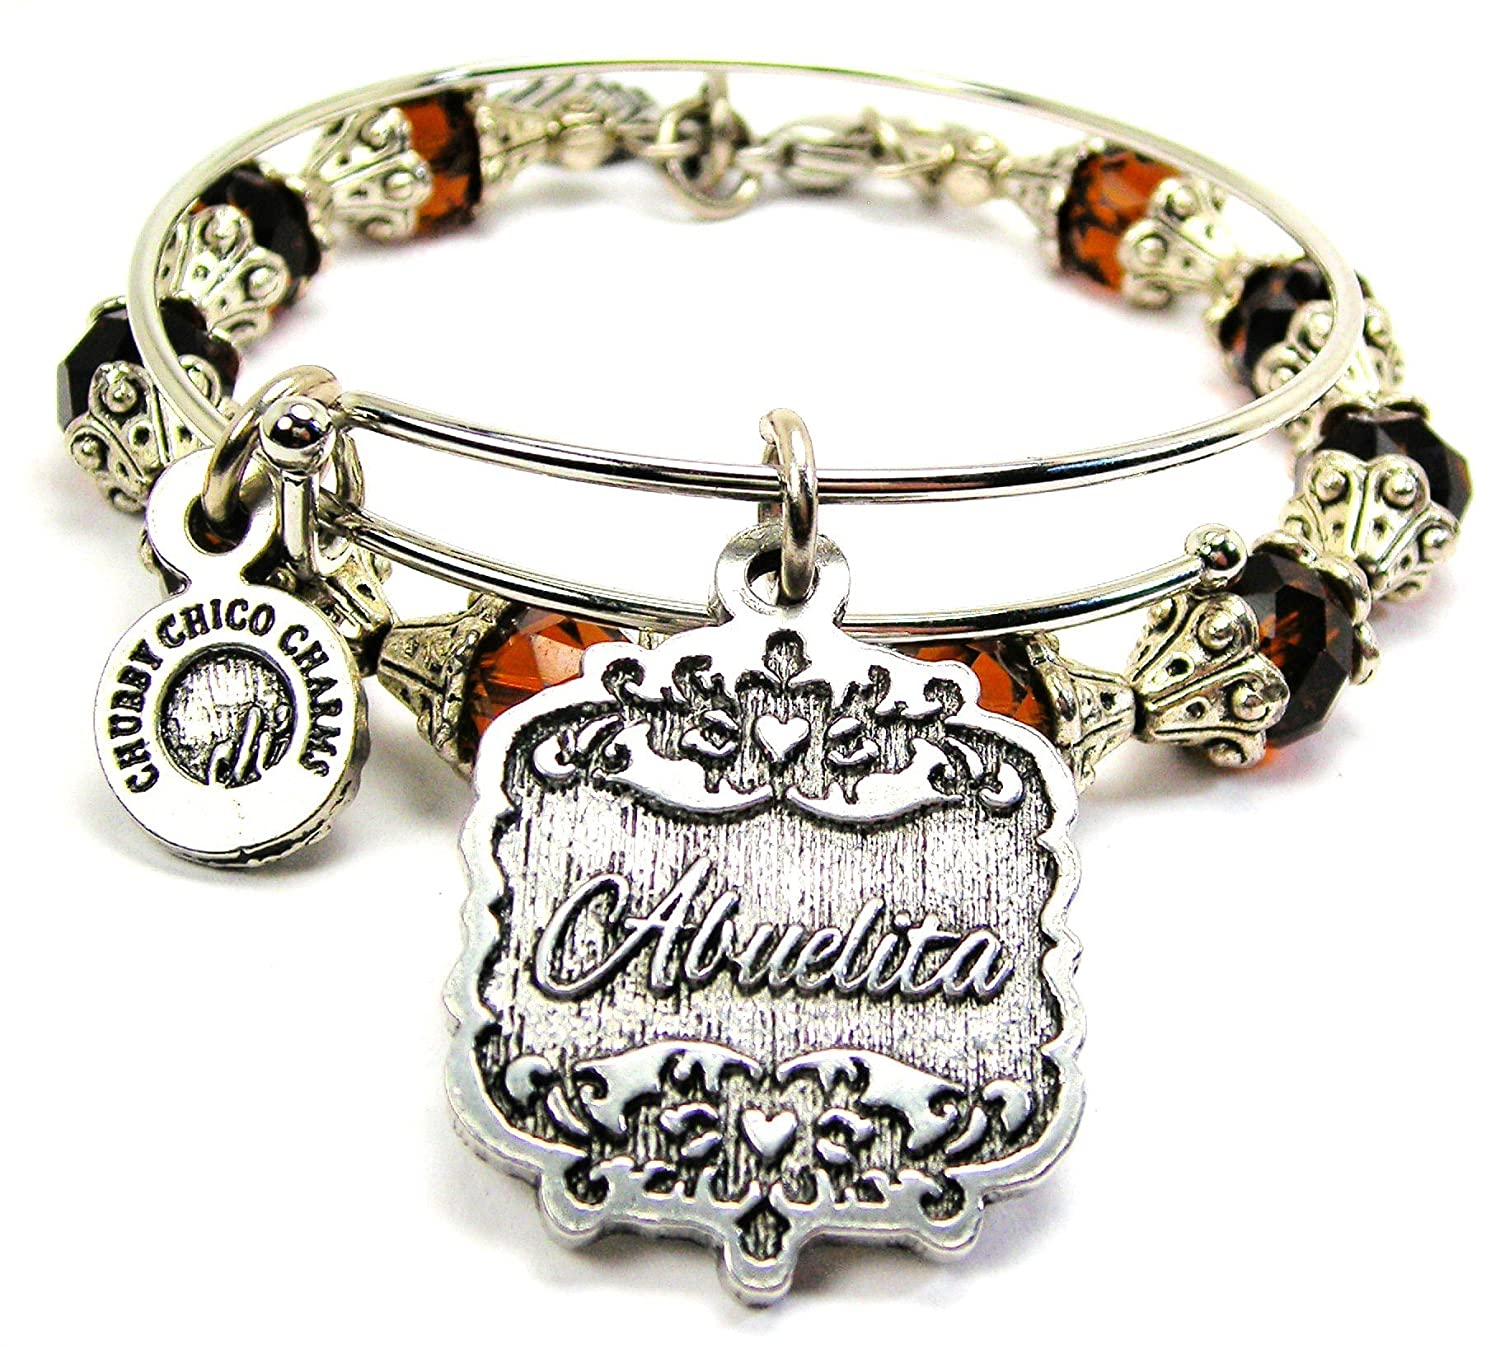 Chubby Chico Charms Abuelita Victorian Scroll Crystal Collection Bracelet Set in Chocolate Brown